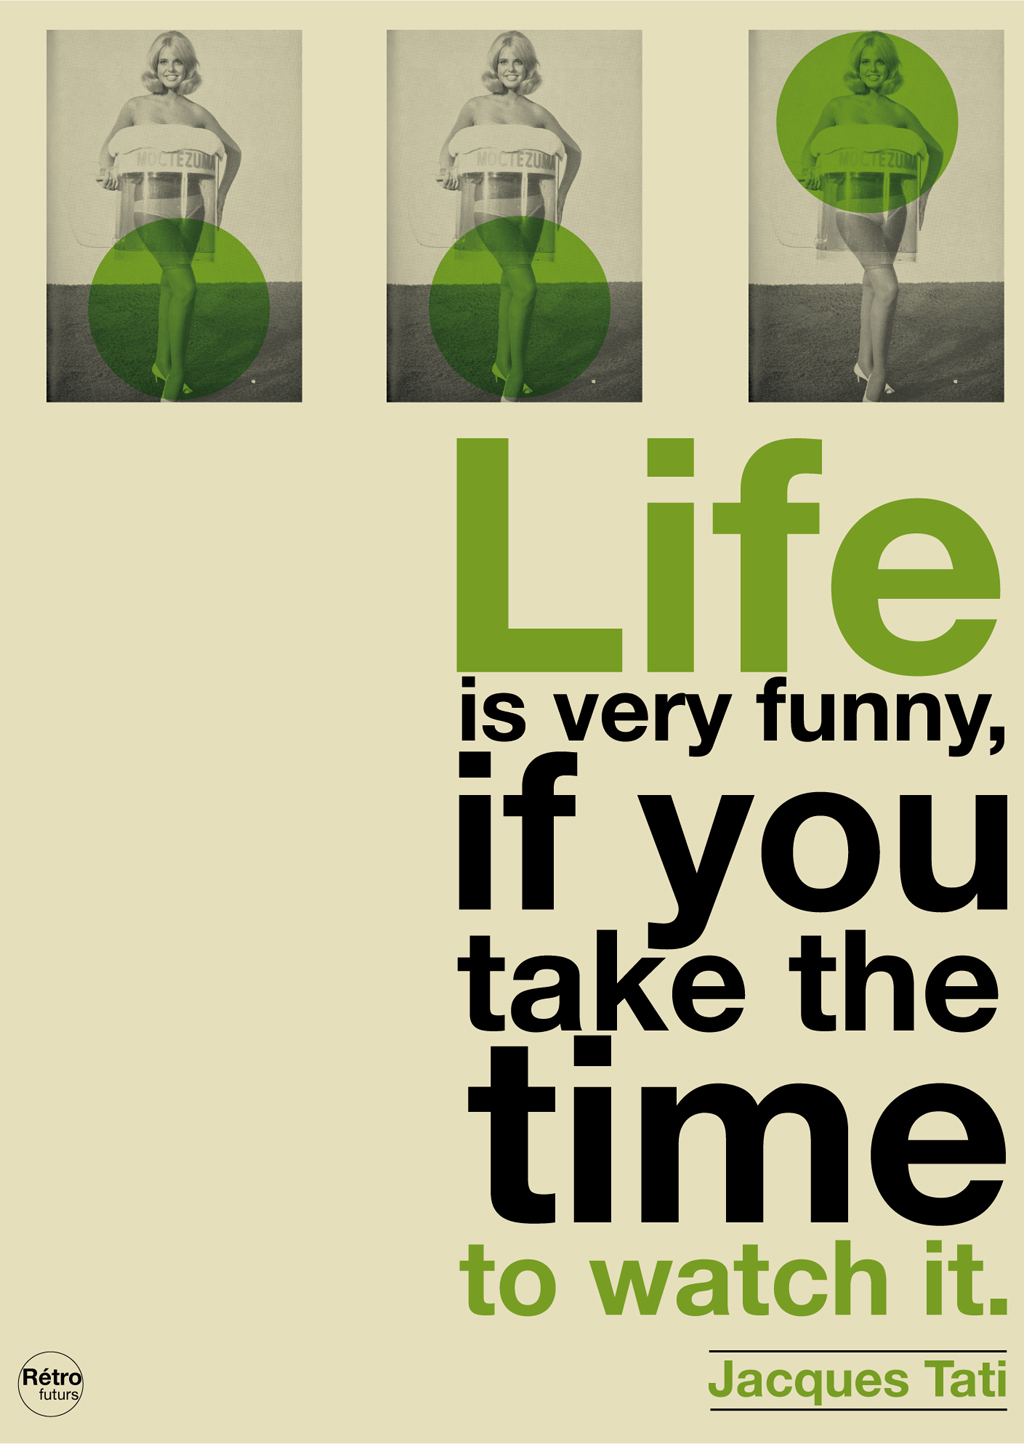 20  Short and Funny Quotes About Life  Picsoi.com